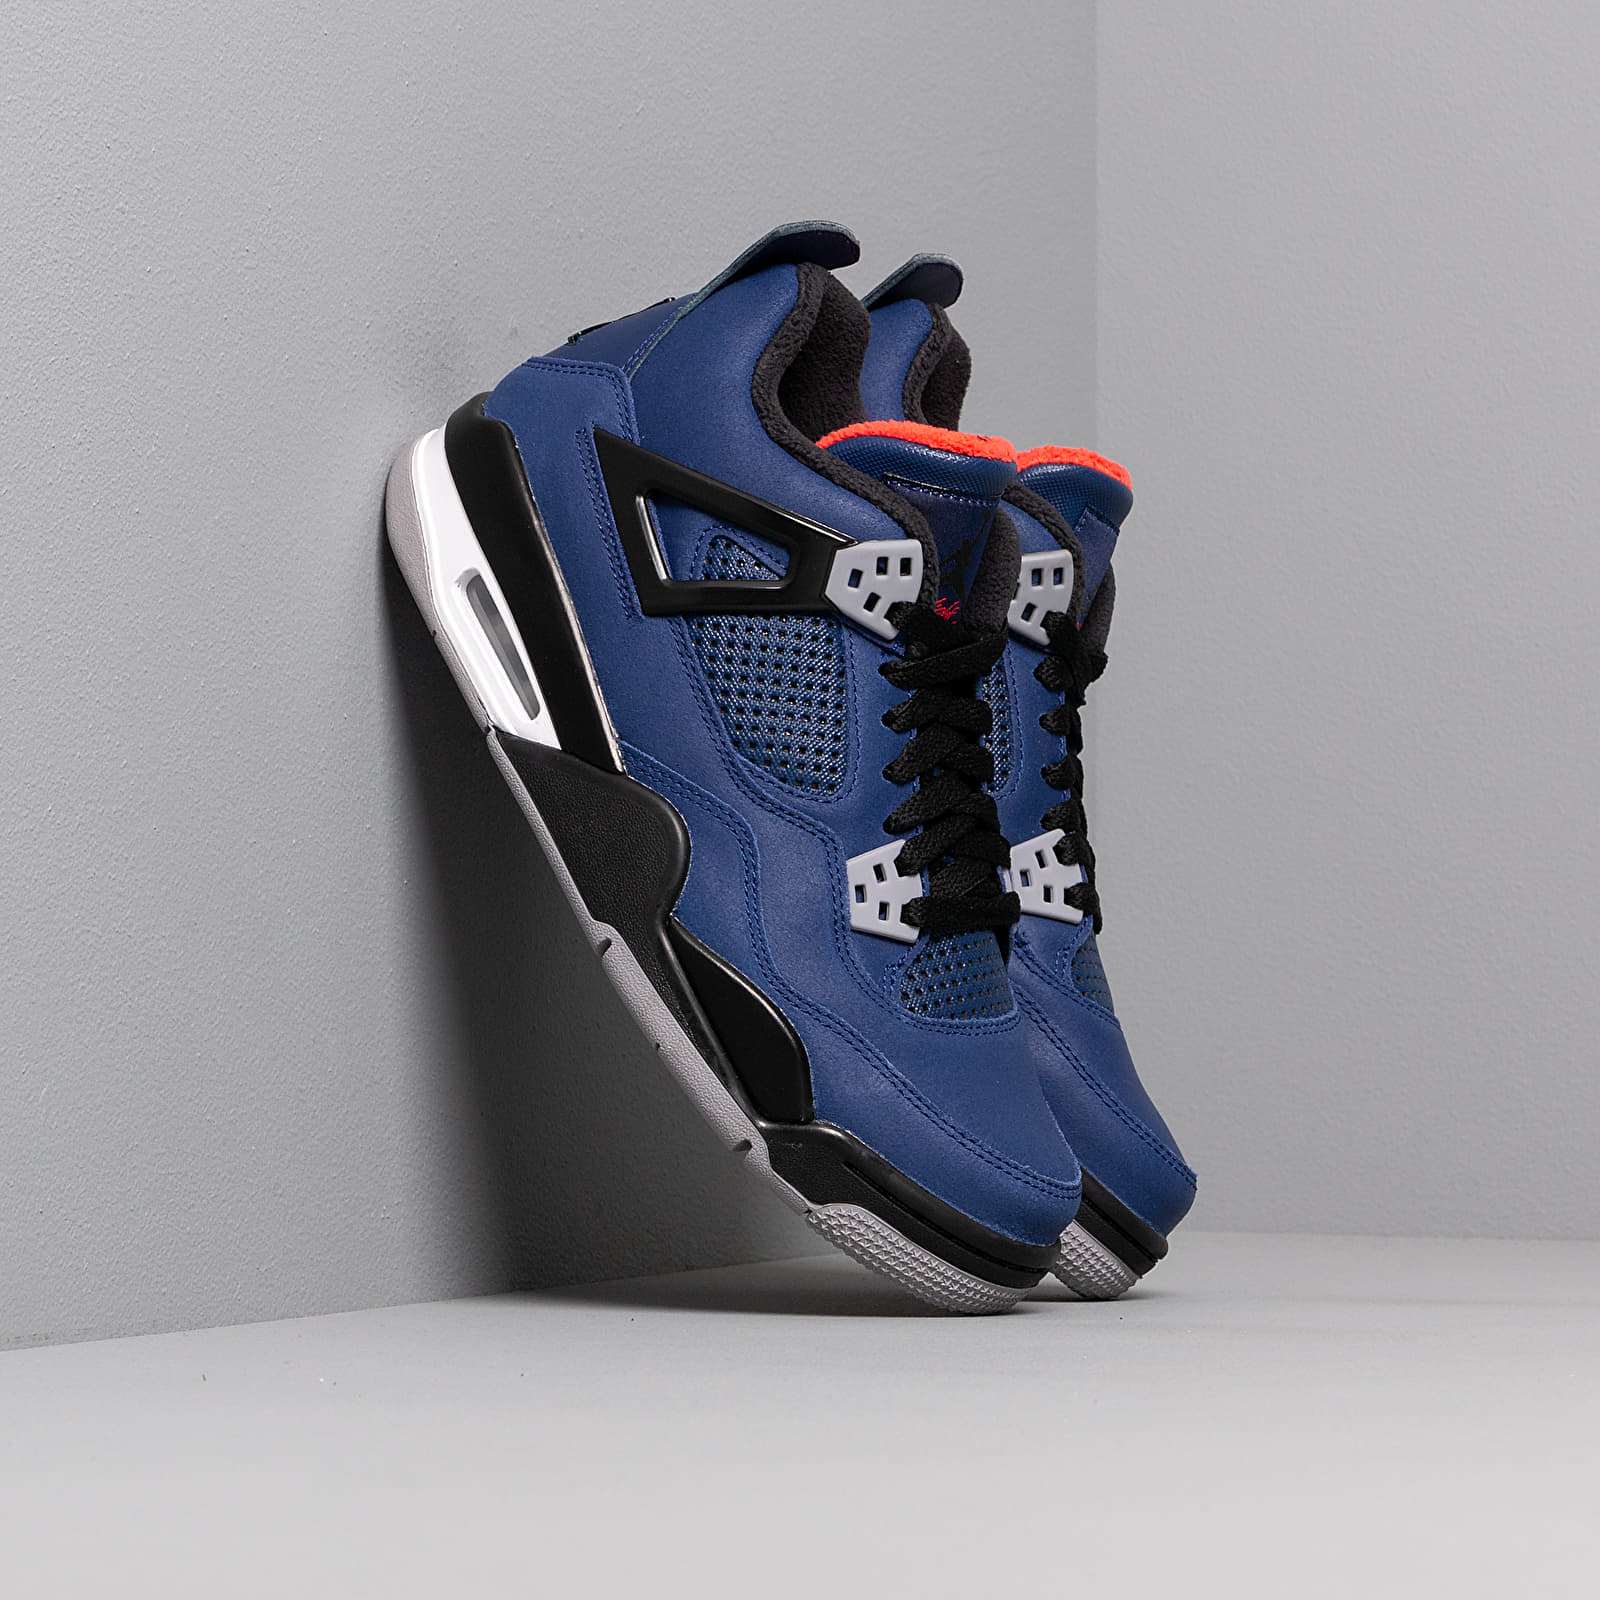 Zapatillas mujer Air Jordan 4 Retro Wntr Bg Loyal Blue/ Black-White-Habanero Red